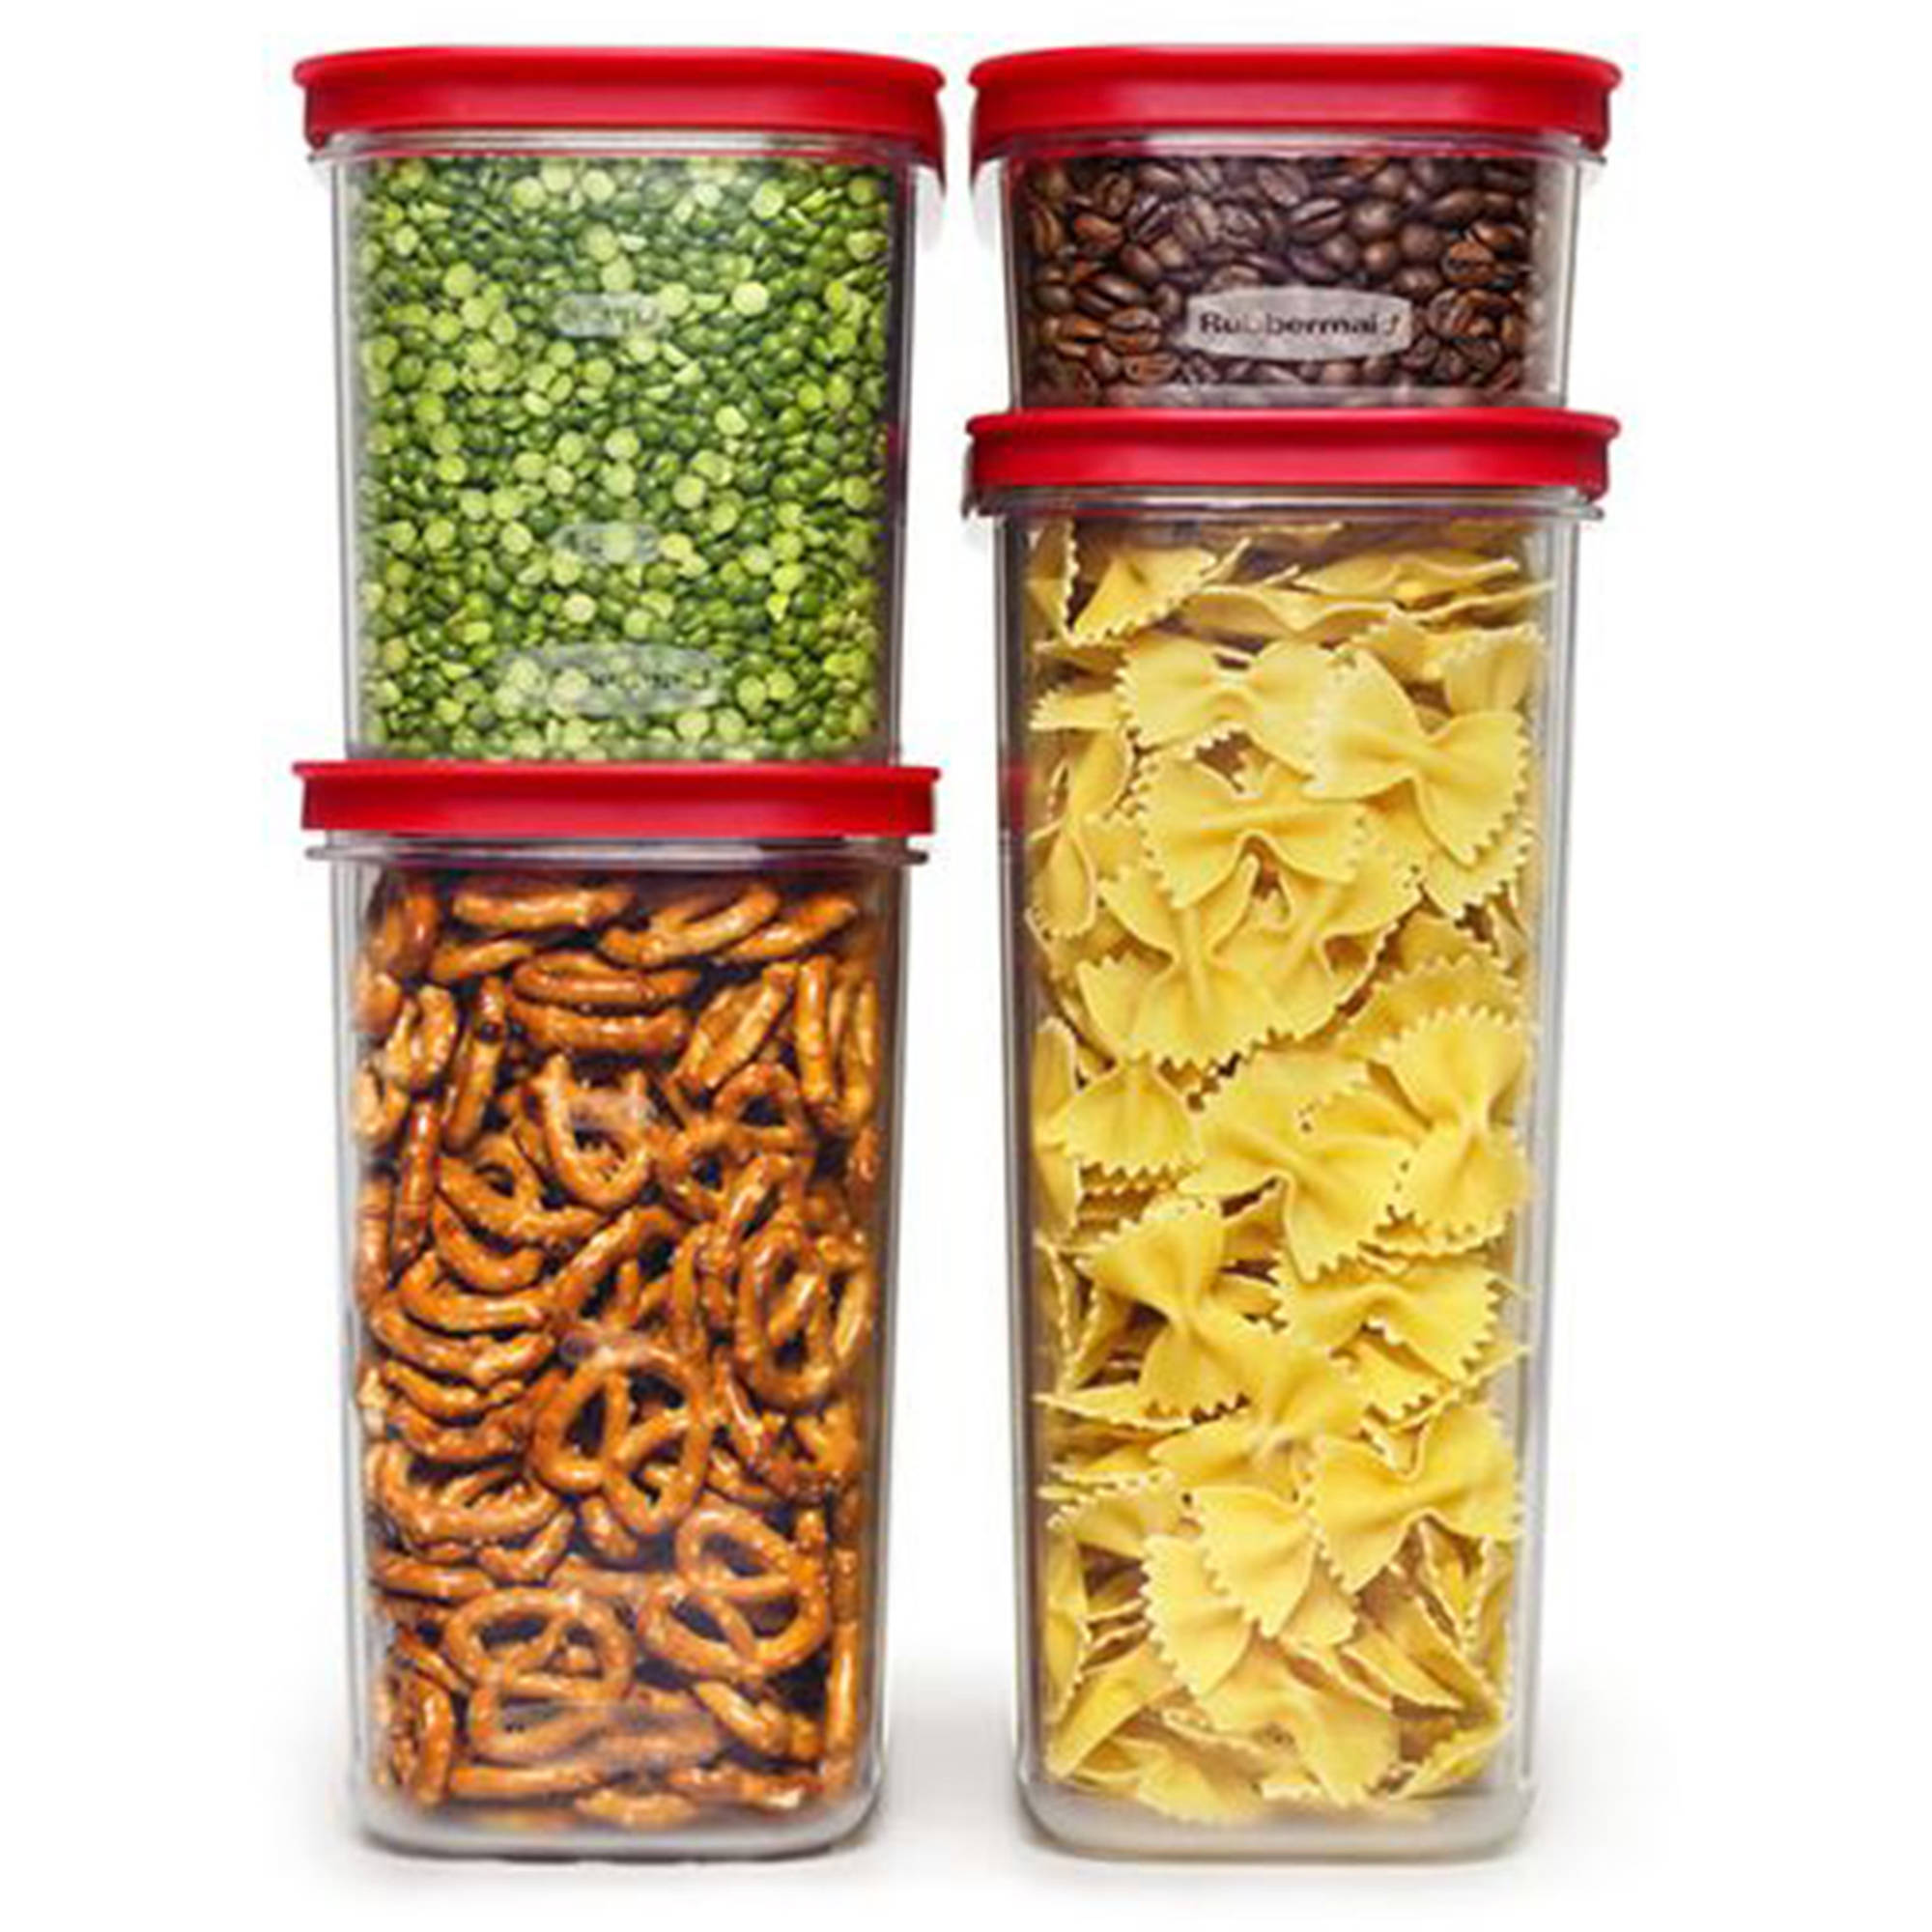 Rubbermaid Modular Canisters 8-Piece Set, Red